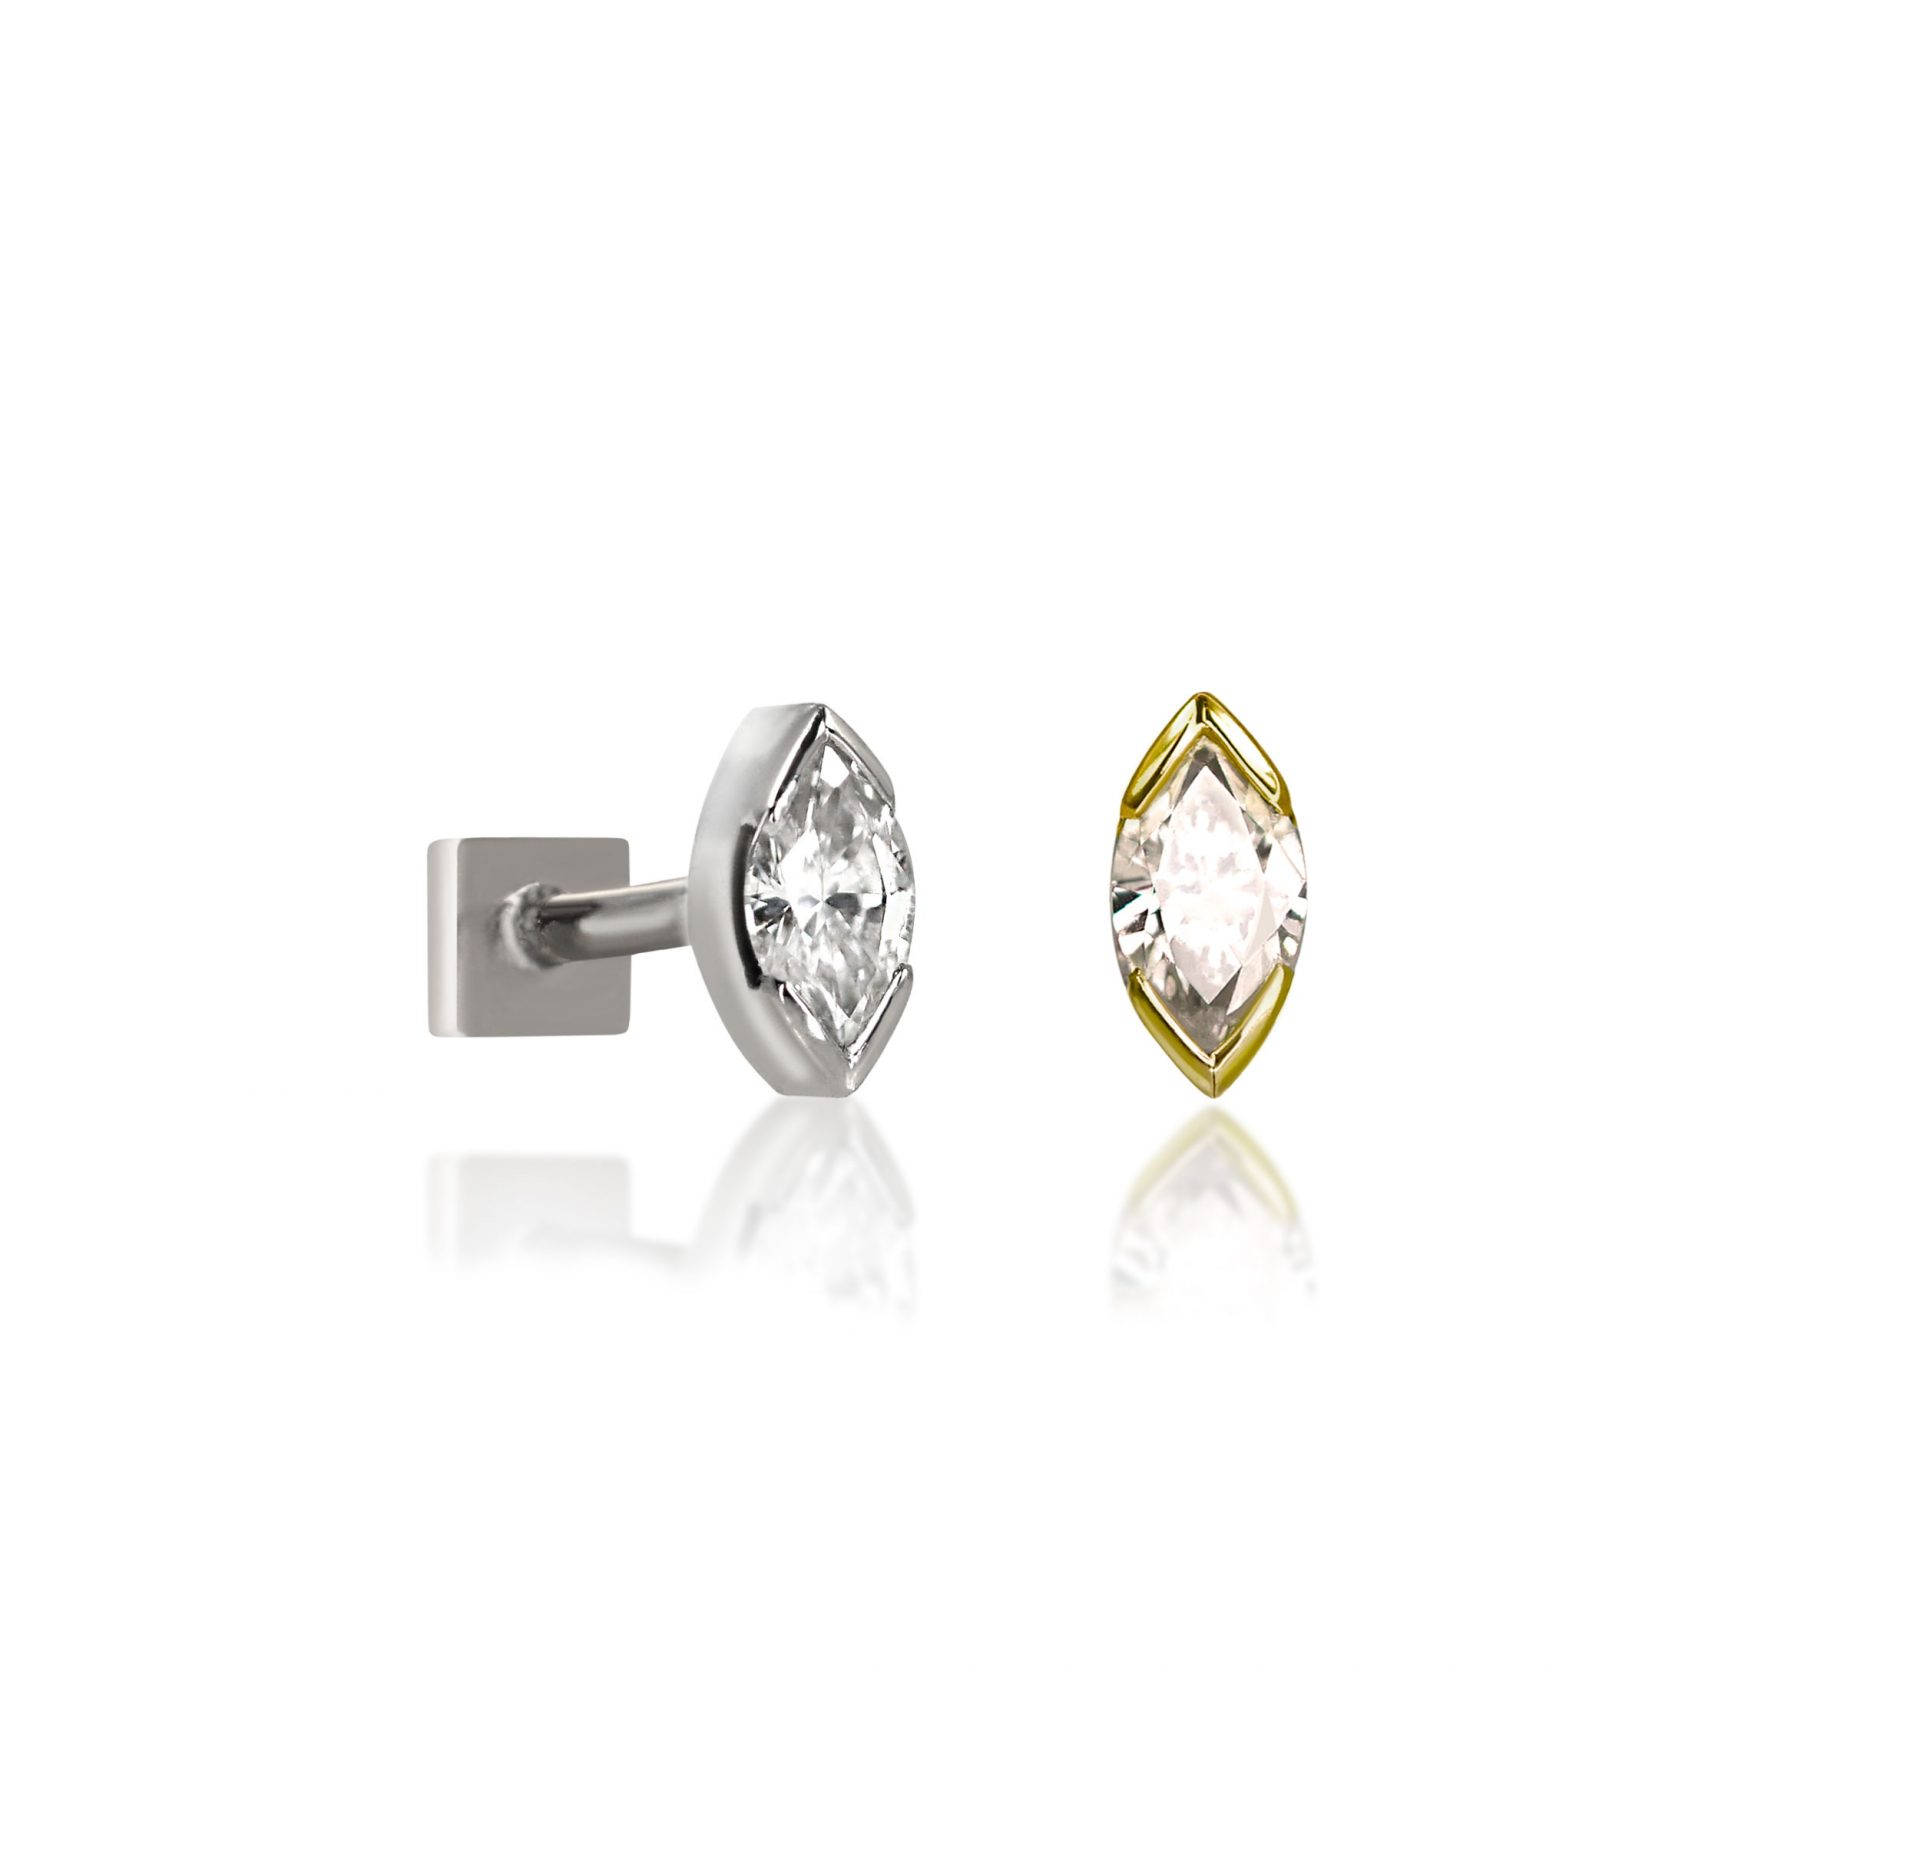 lena-cohen-luxury-ear-piercings-18k-solid-gold-natural-marquise-shaped-diamond-cartilage-stud-earring